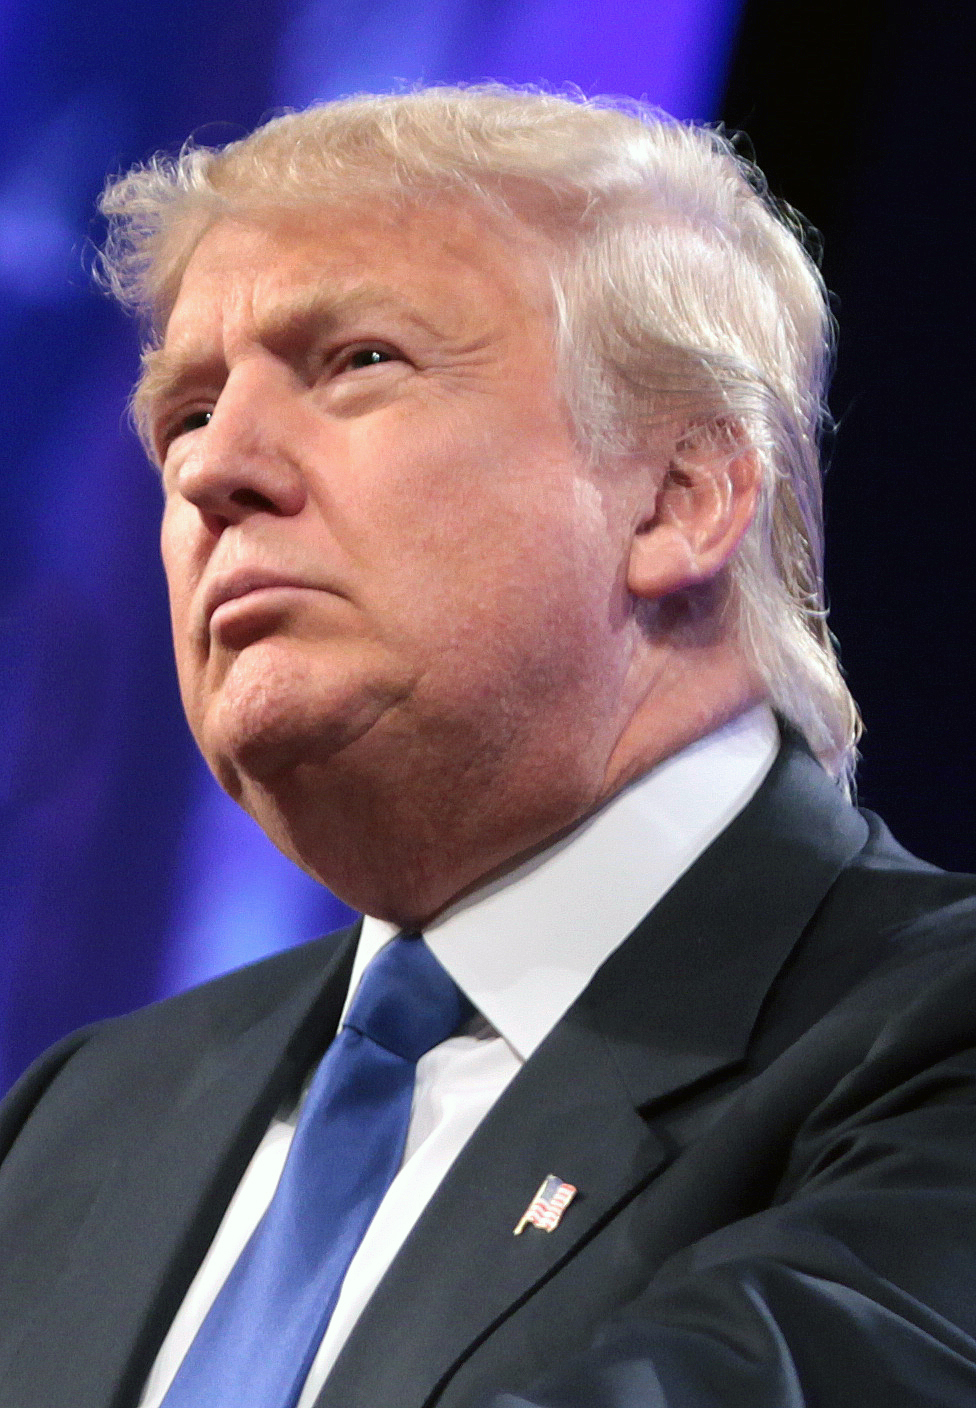 Donald Trump's own life experiences continue to shape his campaign. Photo by Wiki Commons.